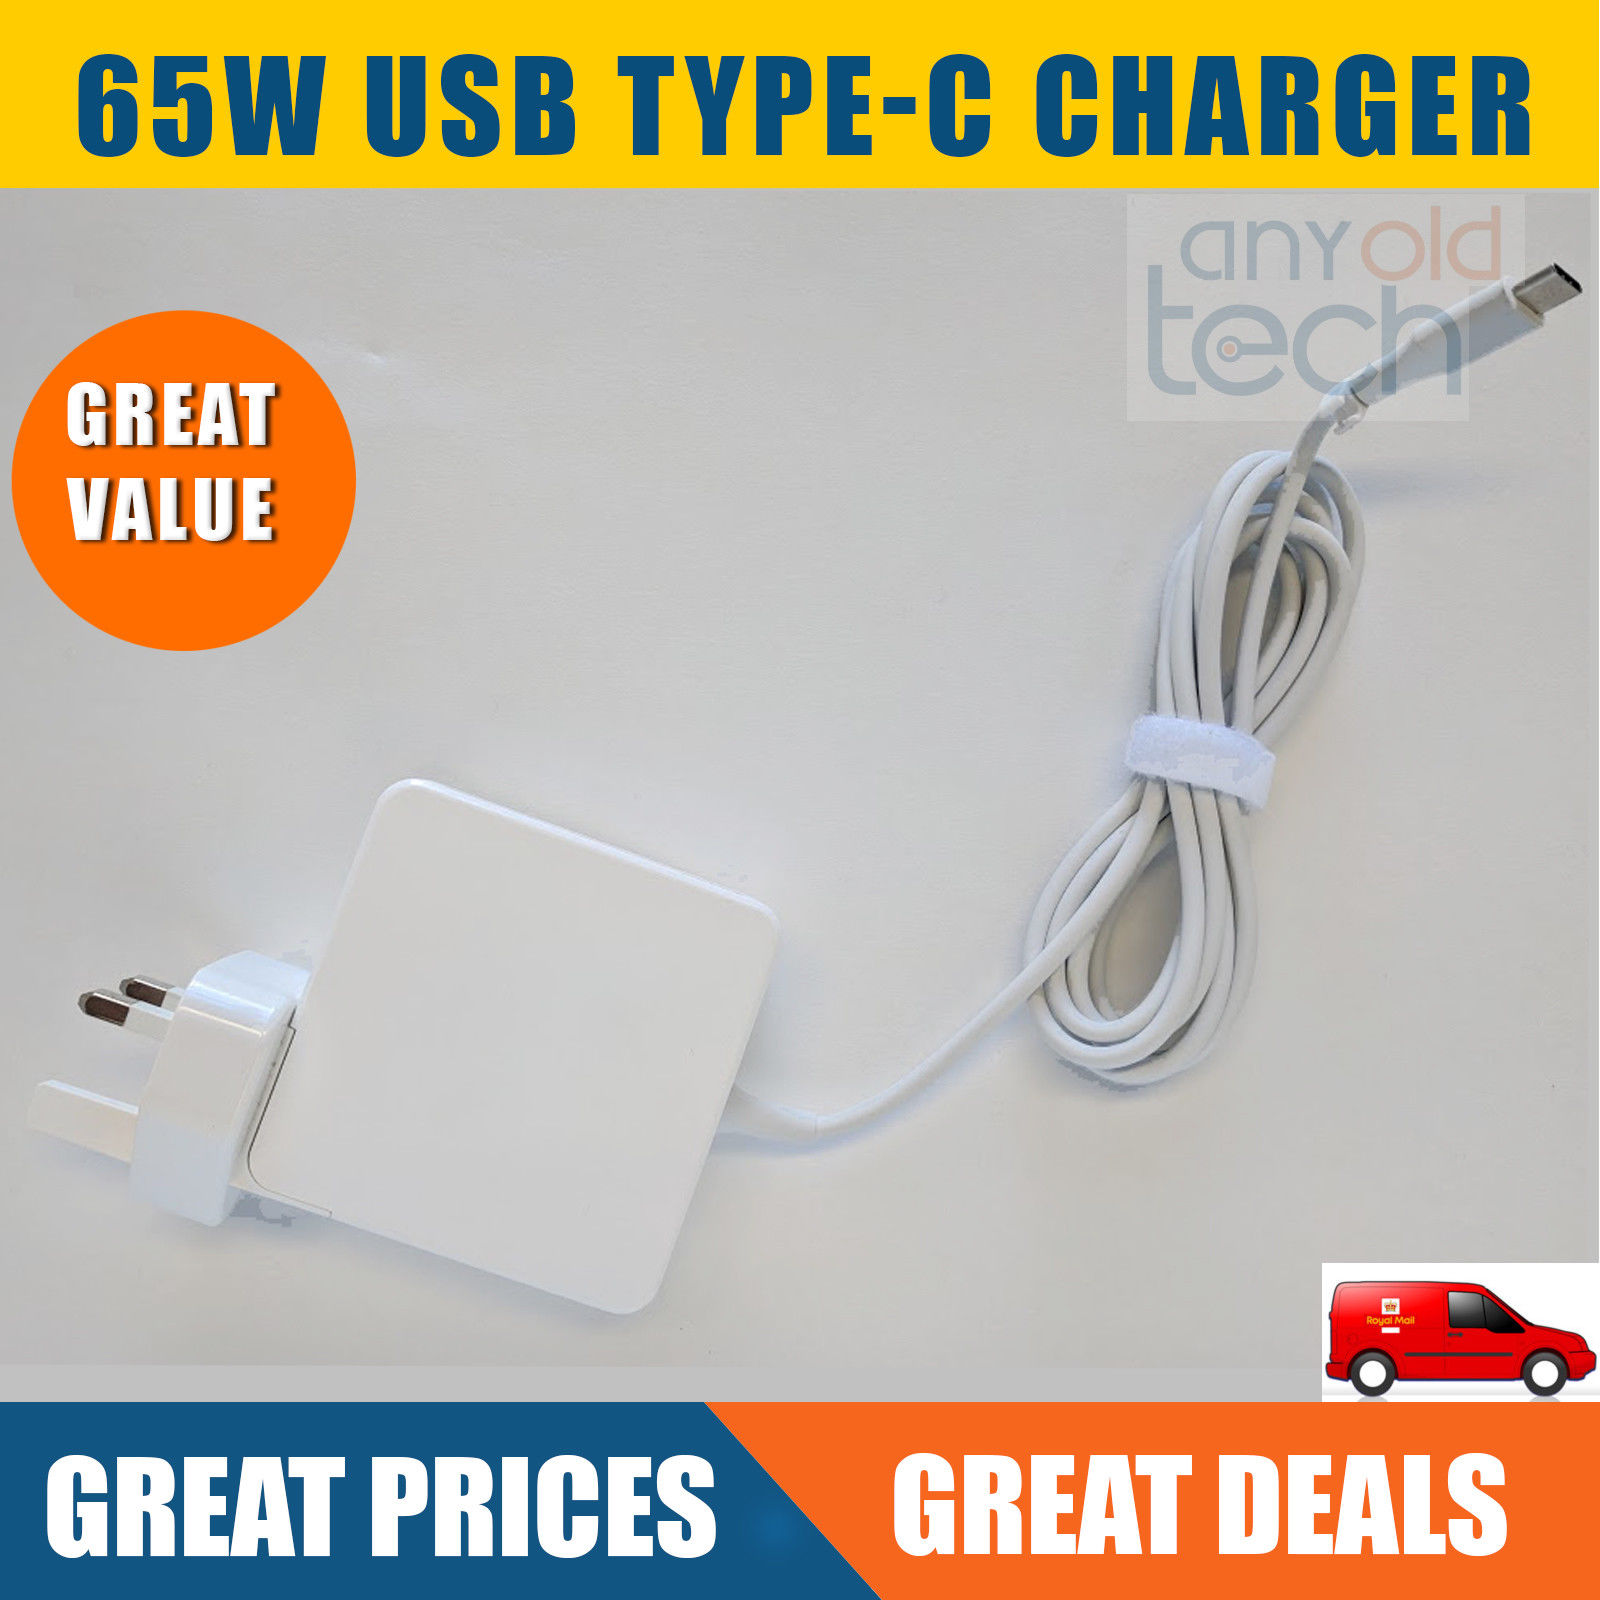 65W USB Type-c Adapter for Macbook Lenovo Laptops charger,